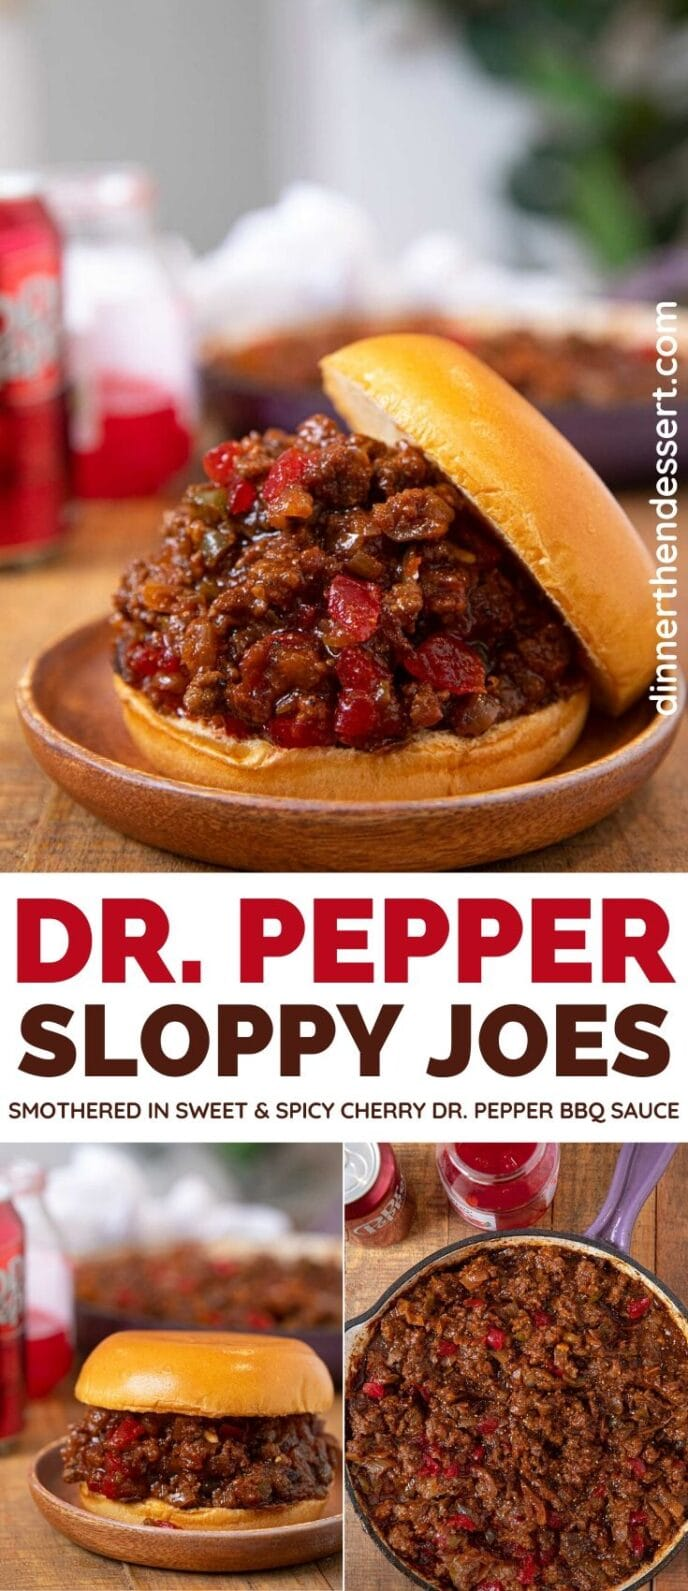 Dr Pepper Sloppy Joes collage